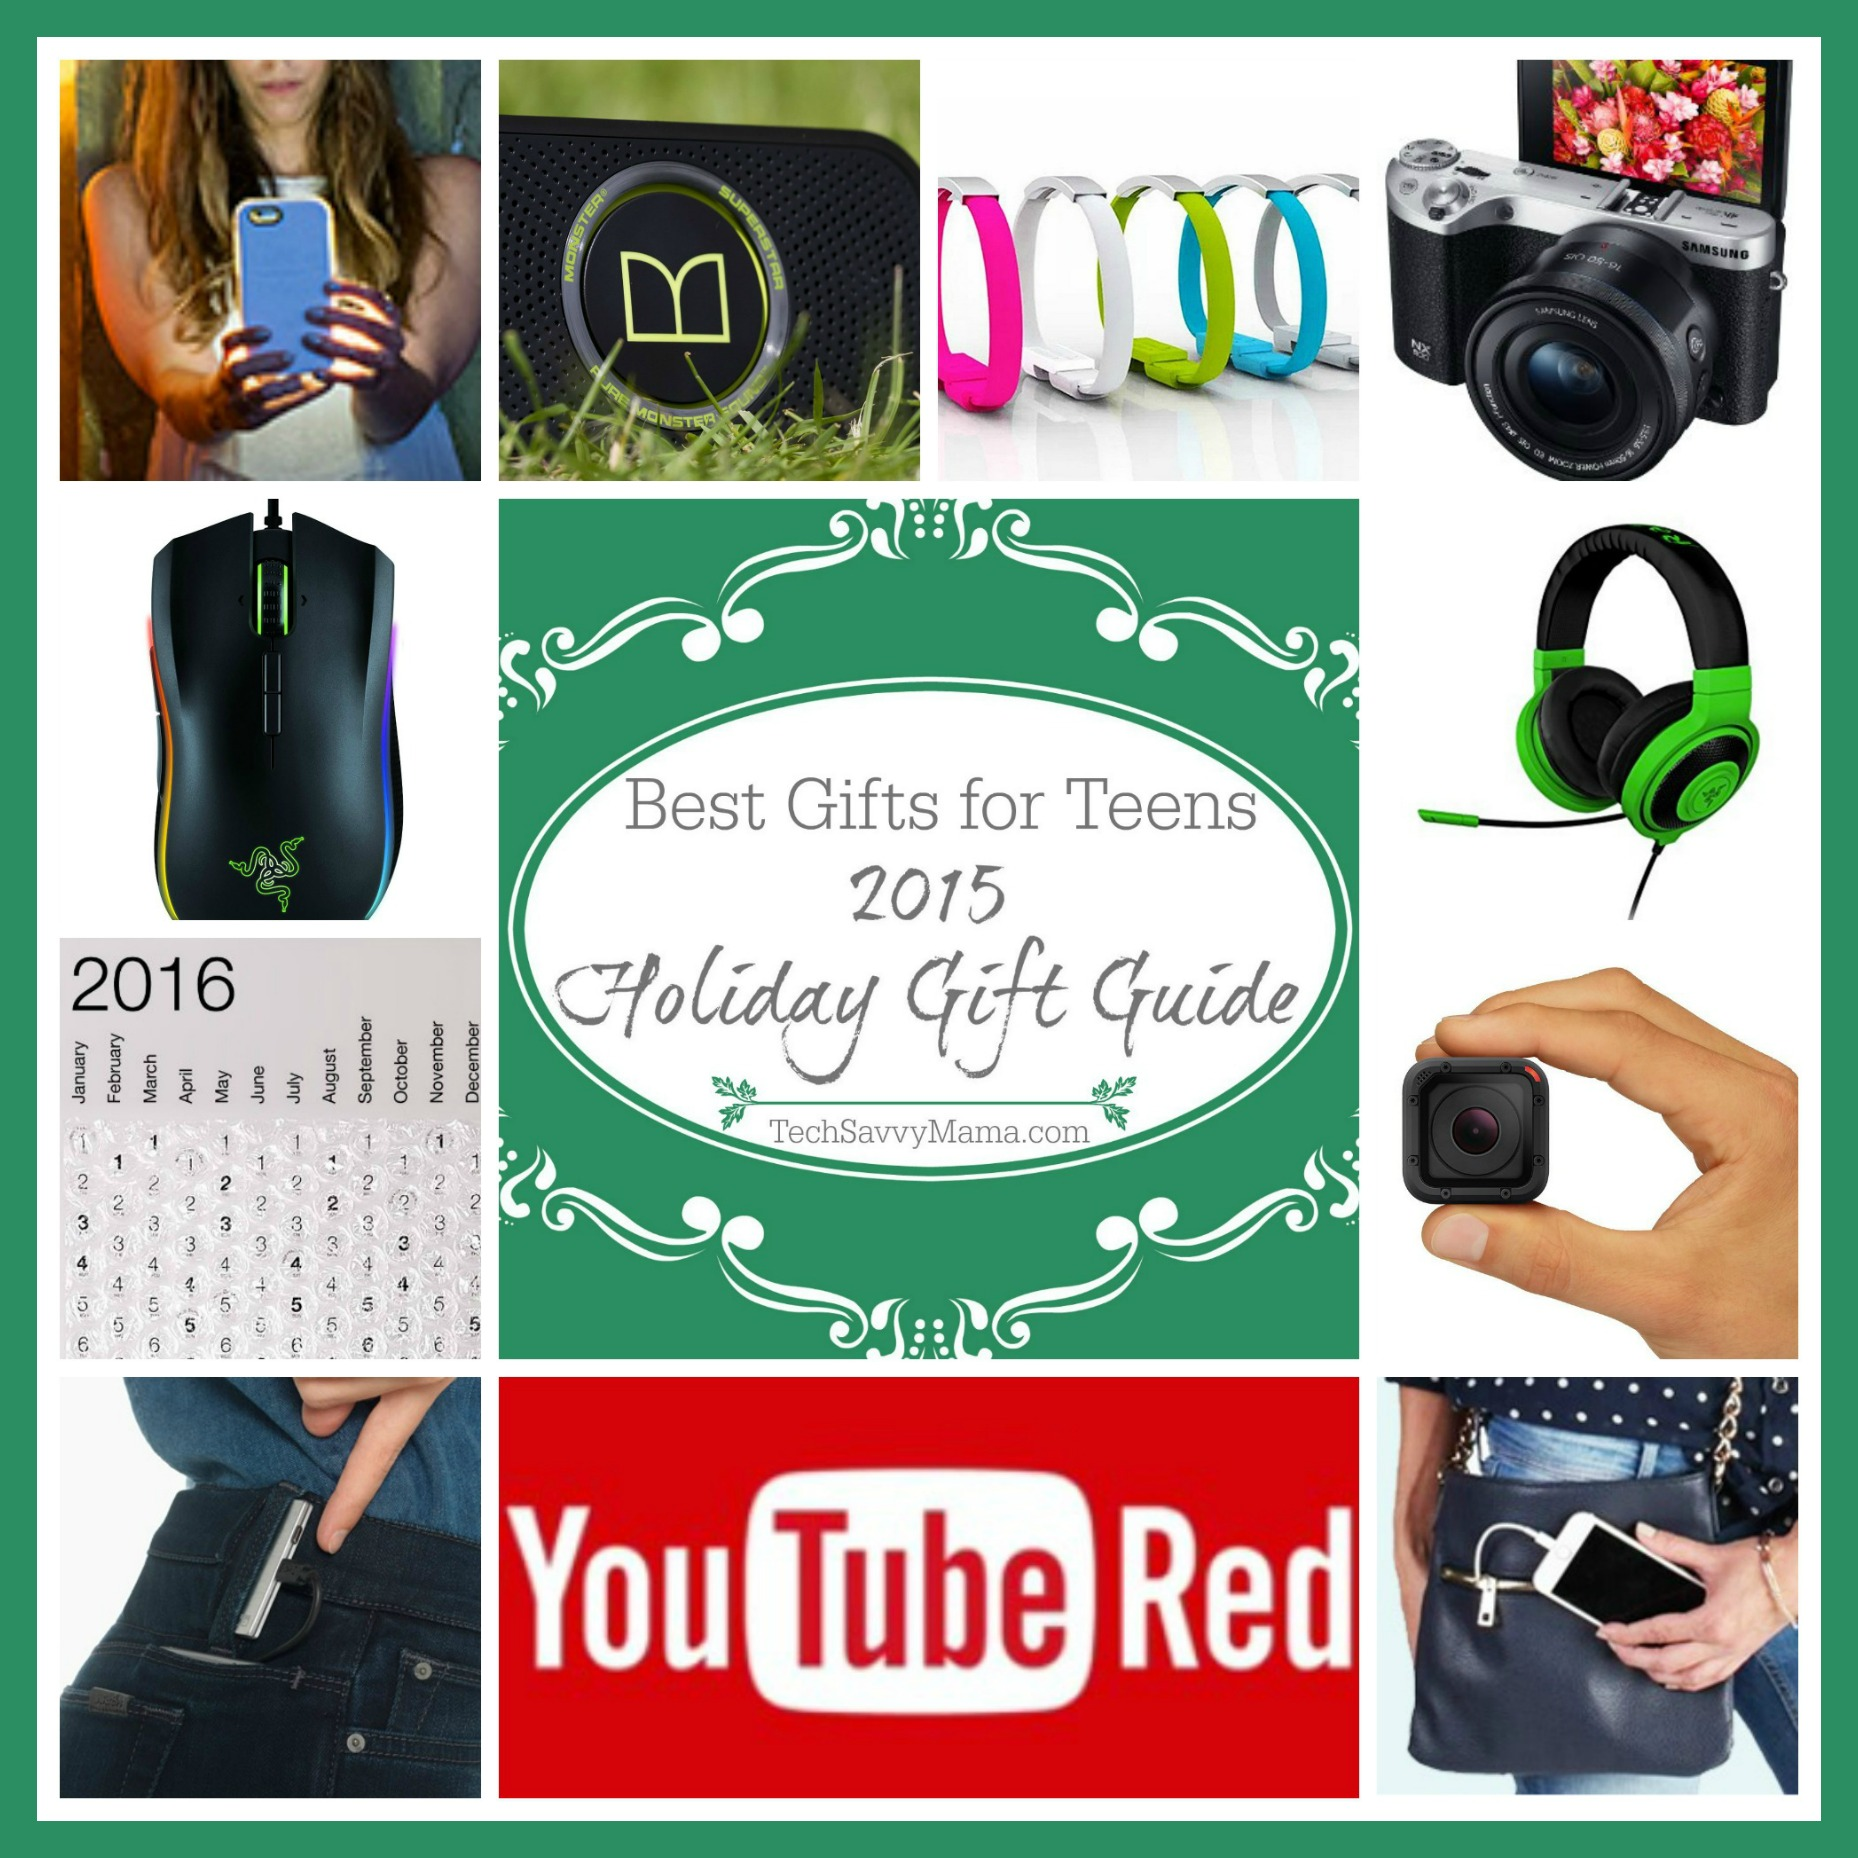 2015 Gift Guide: Best Gifts for Teens (ages 13+)